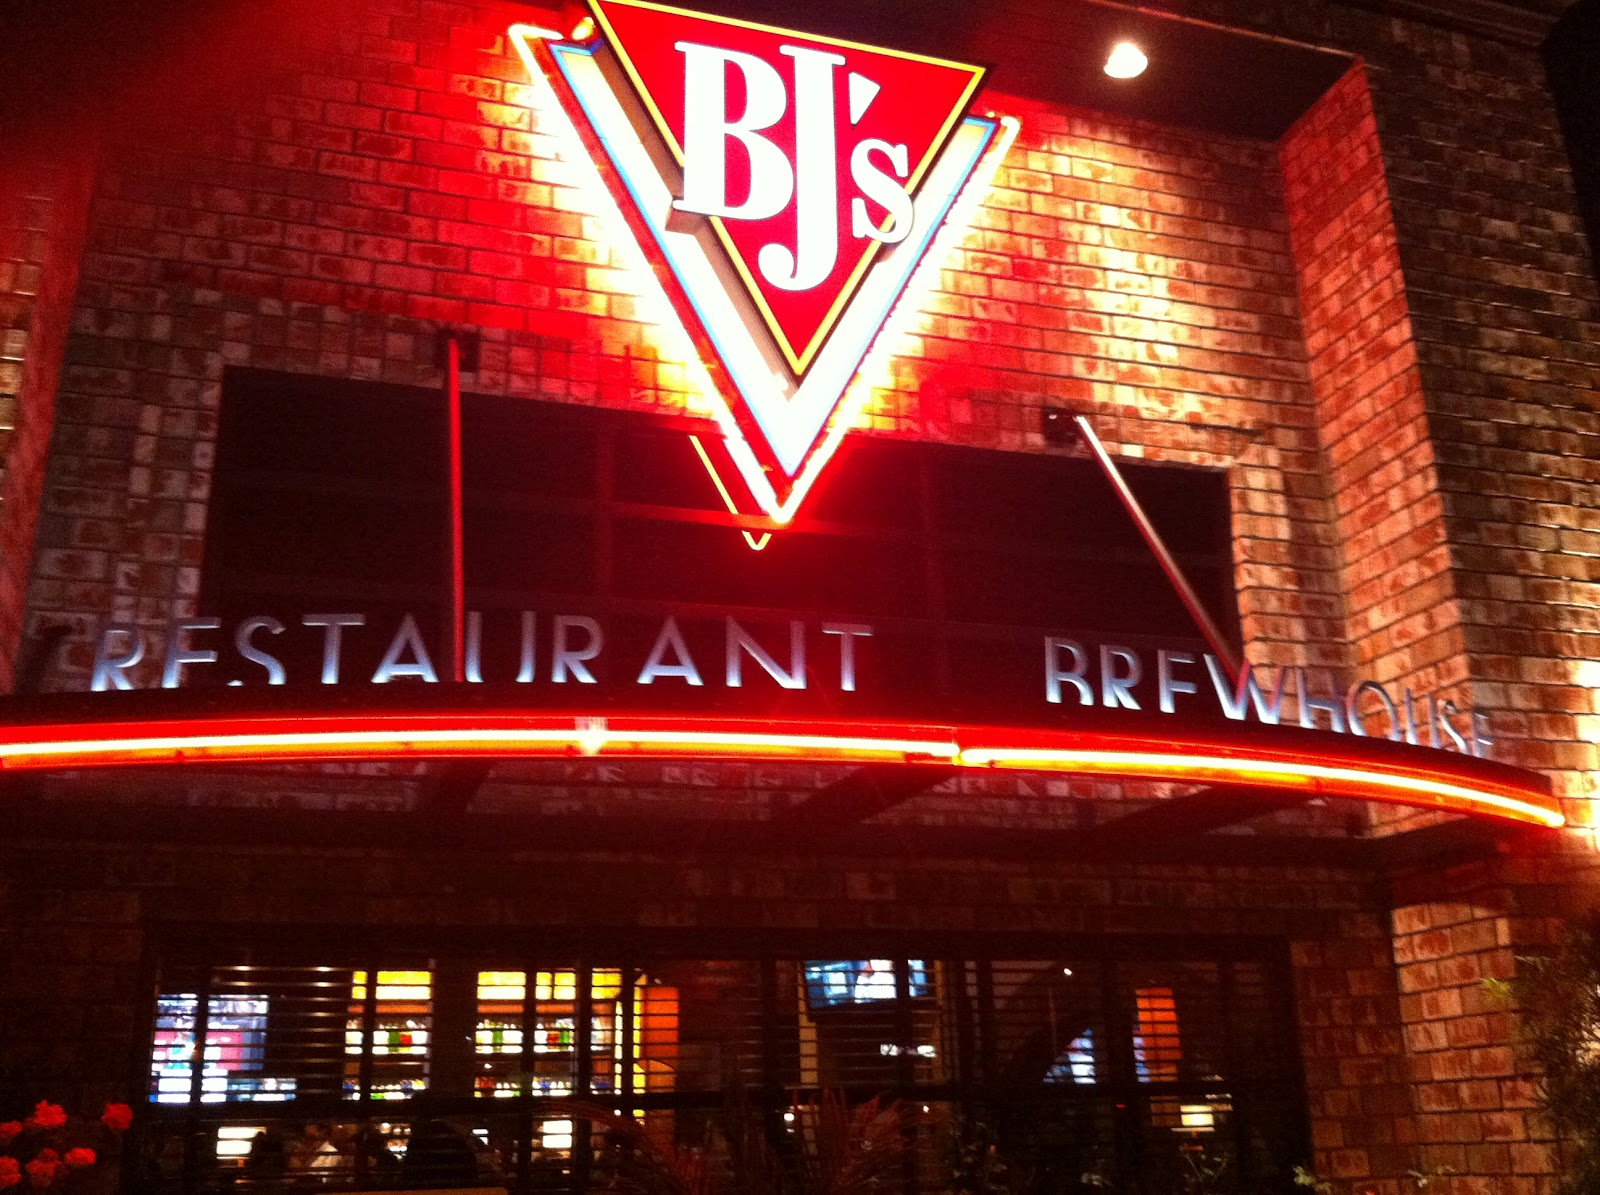 Bjs Restaurant And Brewhouse In Huntington Beach California